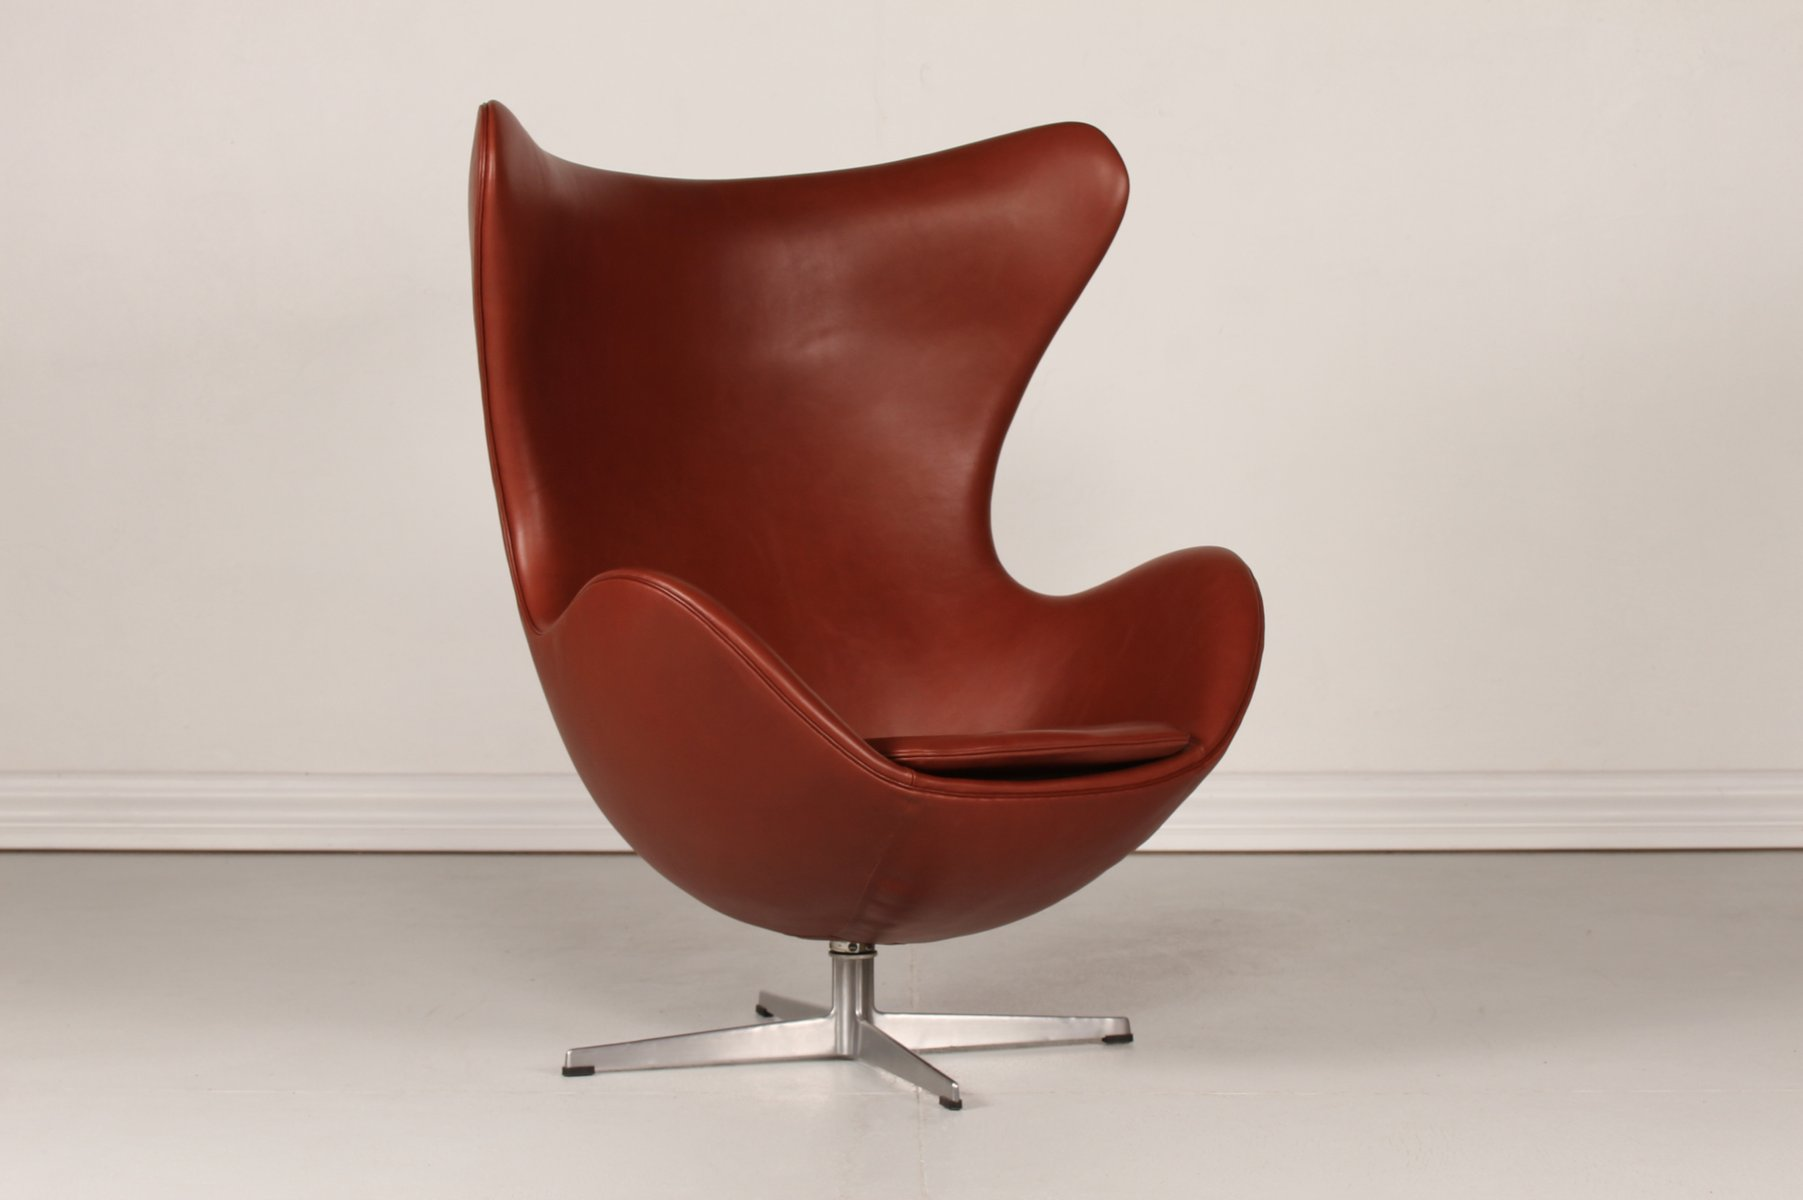 Buy Egg Chair 3316 Cognac Leather Egg Chair By Arne Jacobsen For Fritz